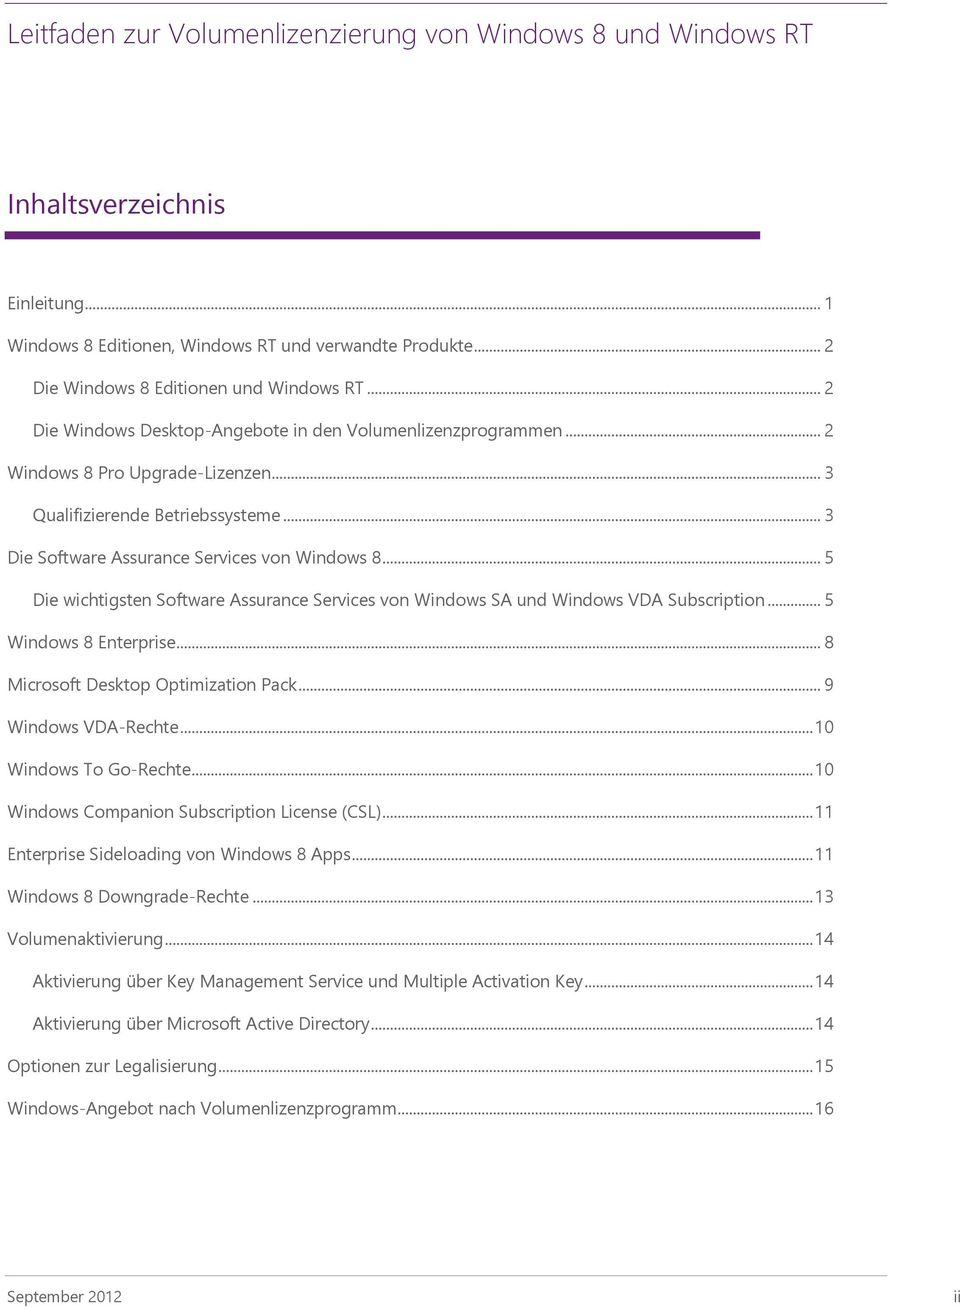 .. 5 Die wichtigsten Software Assurance Services von Windows SA und Windows VDA Subscription... 5 Windows 8 Enterprise... 8 Microsoft Desktop Optimization Pack... 9 Windows VDA-Rechte.